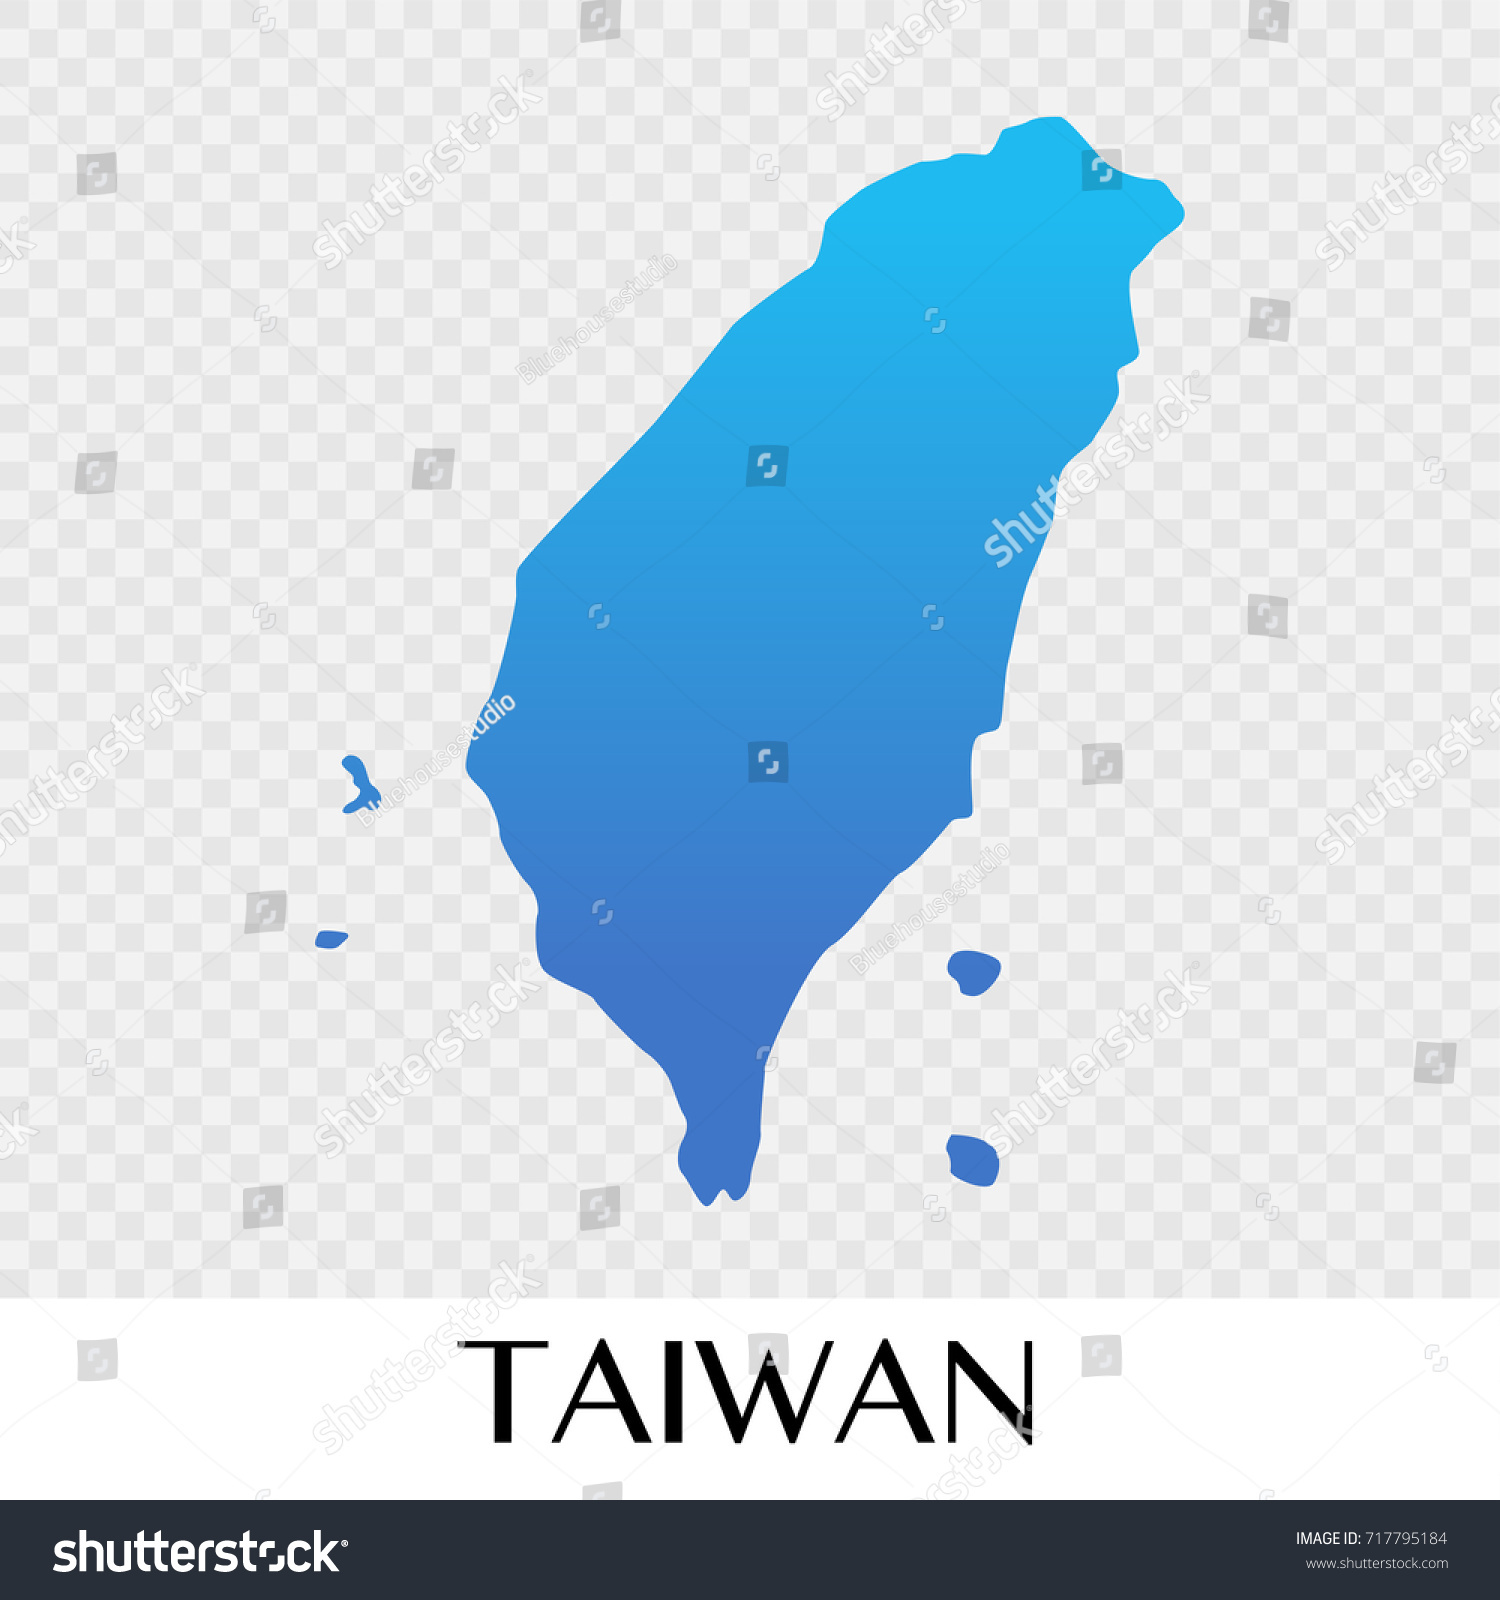 taiwan map in asia continent illustration design